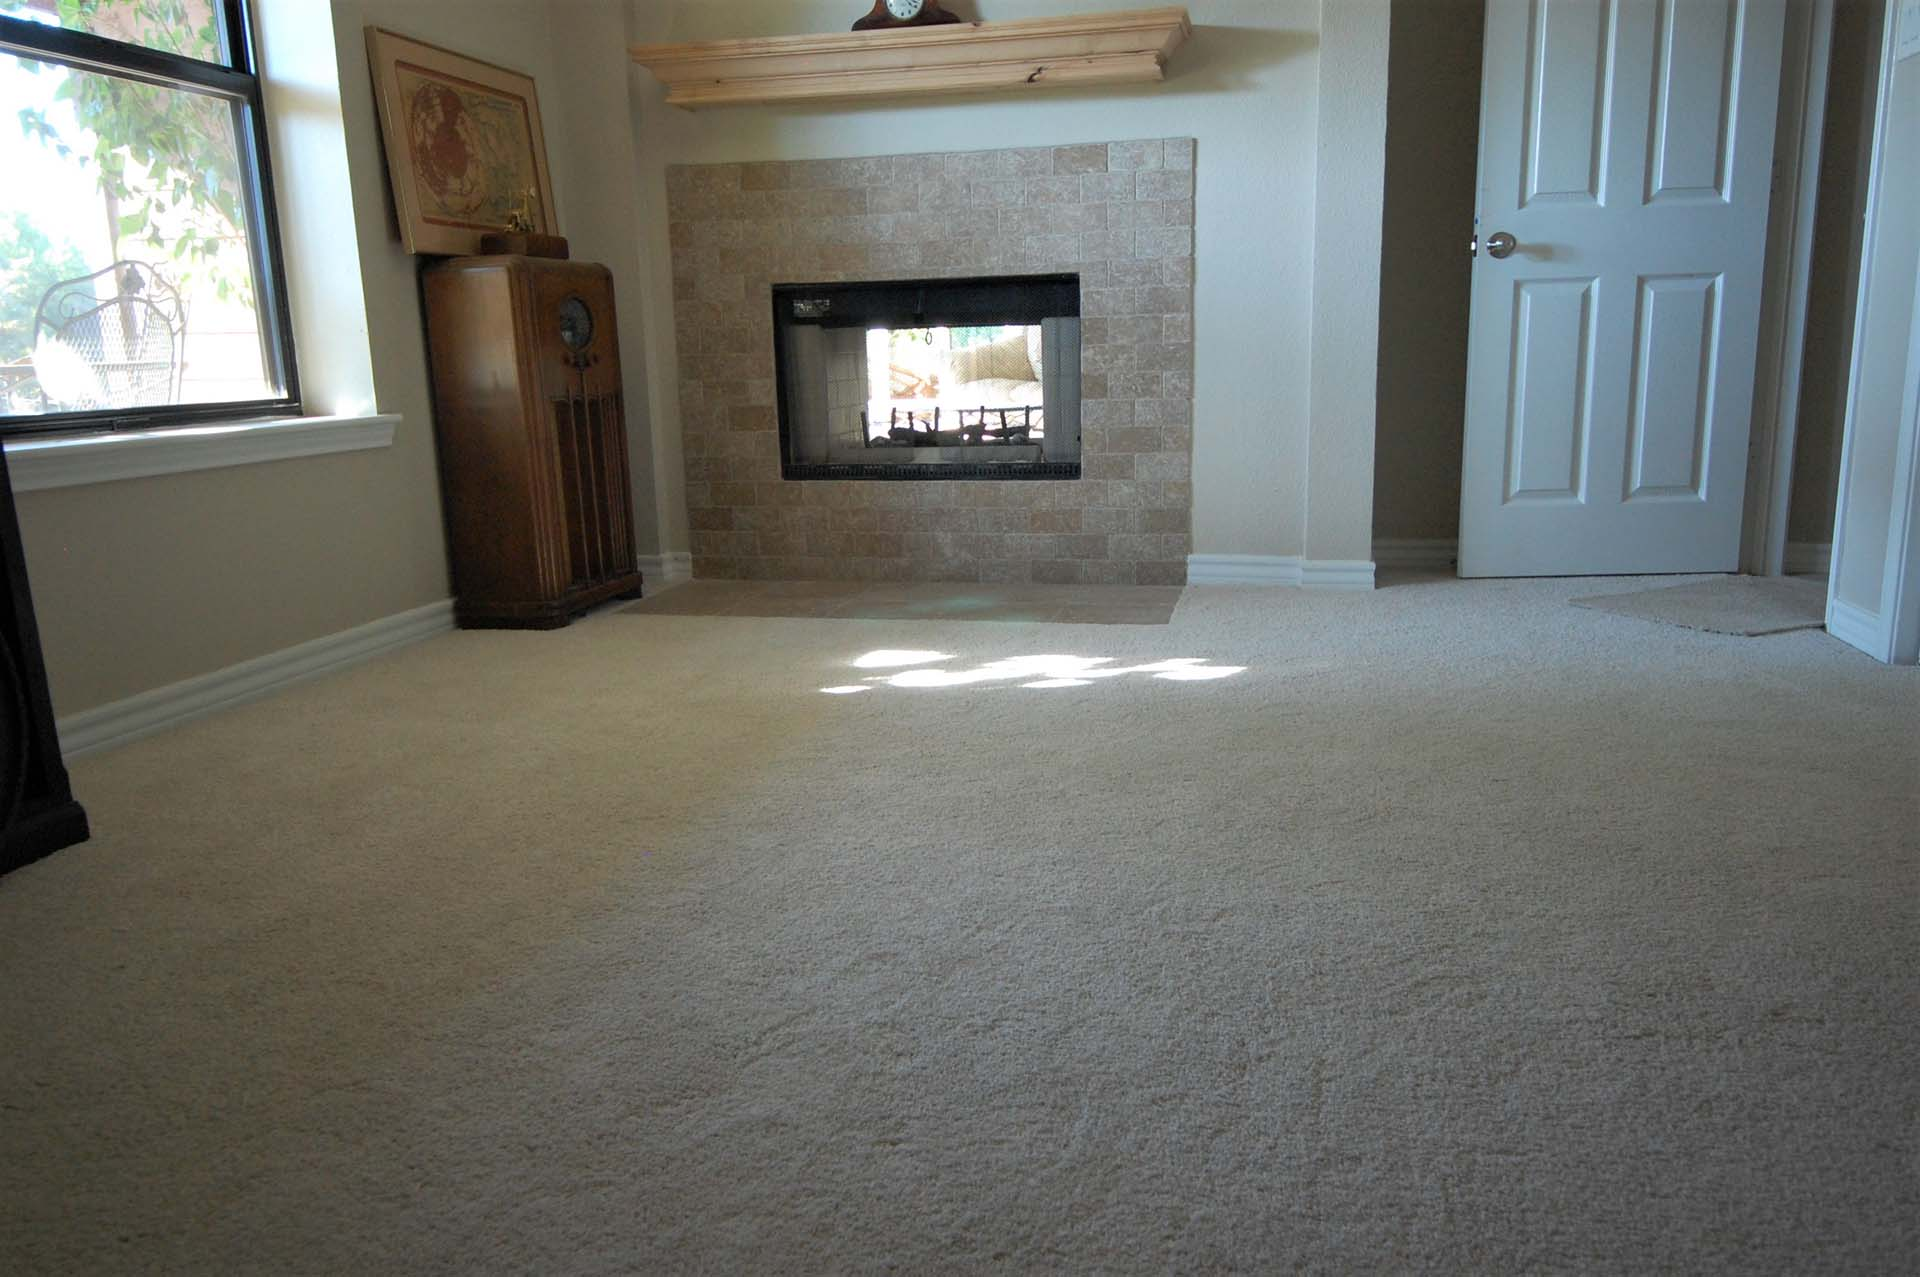 4 After Fireplace Office Carpet and Fireplace brick joint travertine